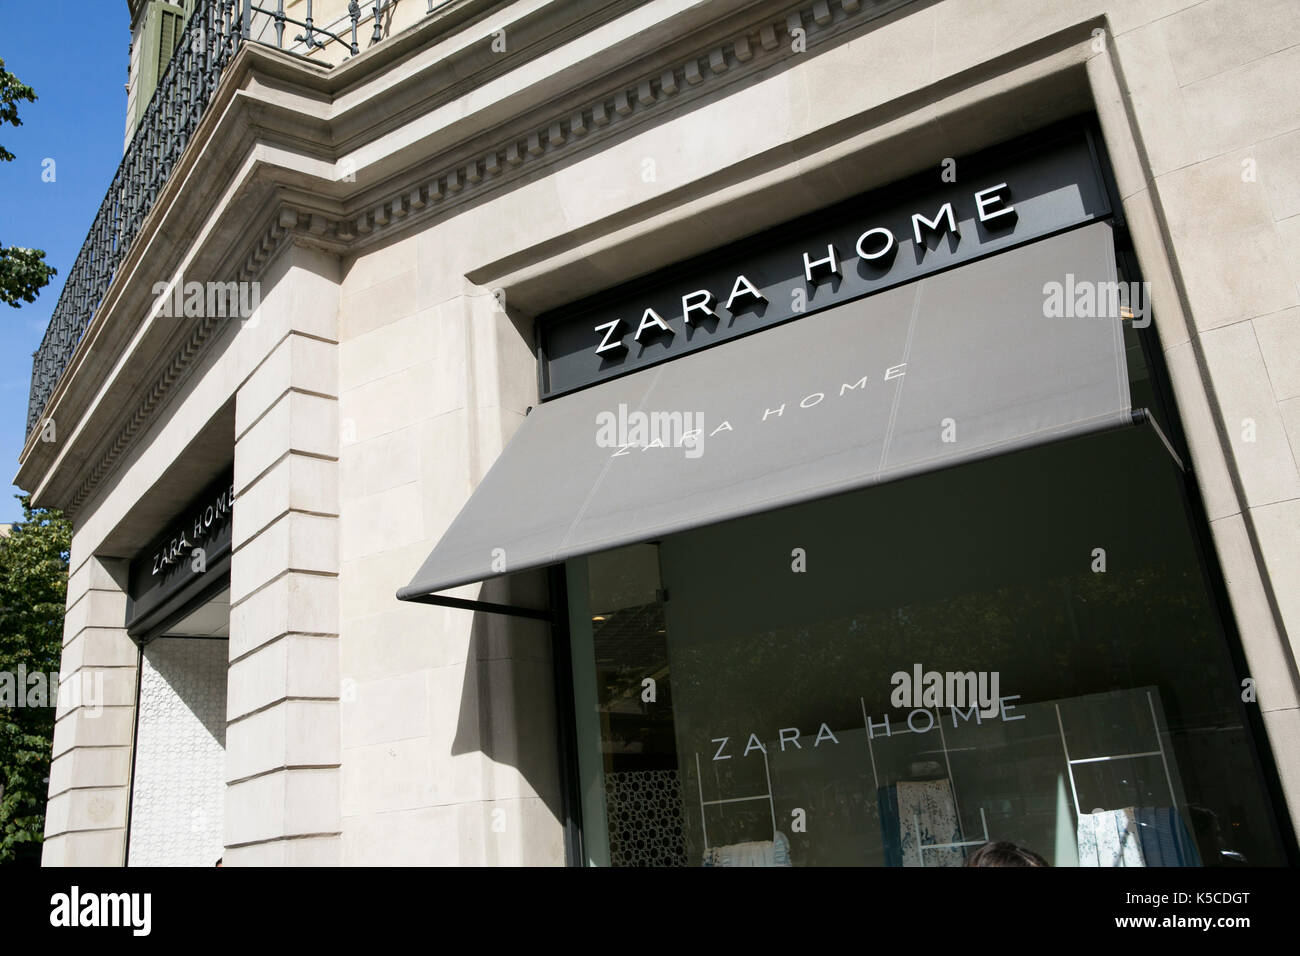 zara home stock photos zara home stock images alamy. Black Bedroom Furniture Sets. Home Design Ideas